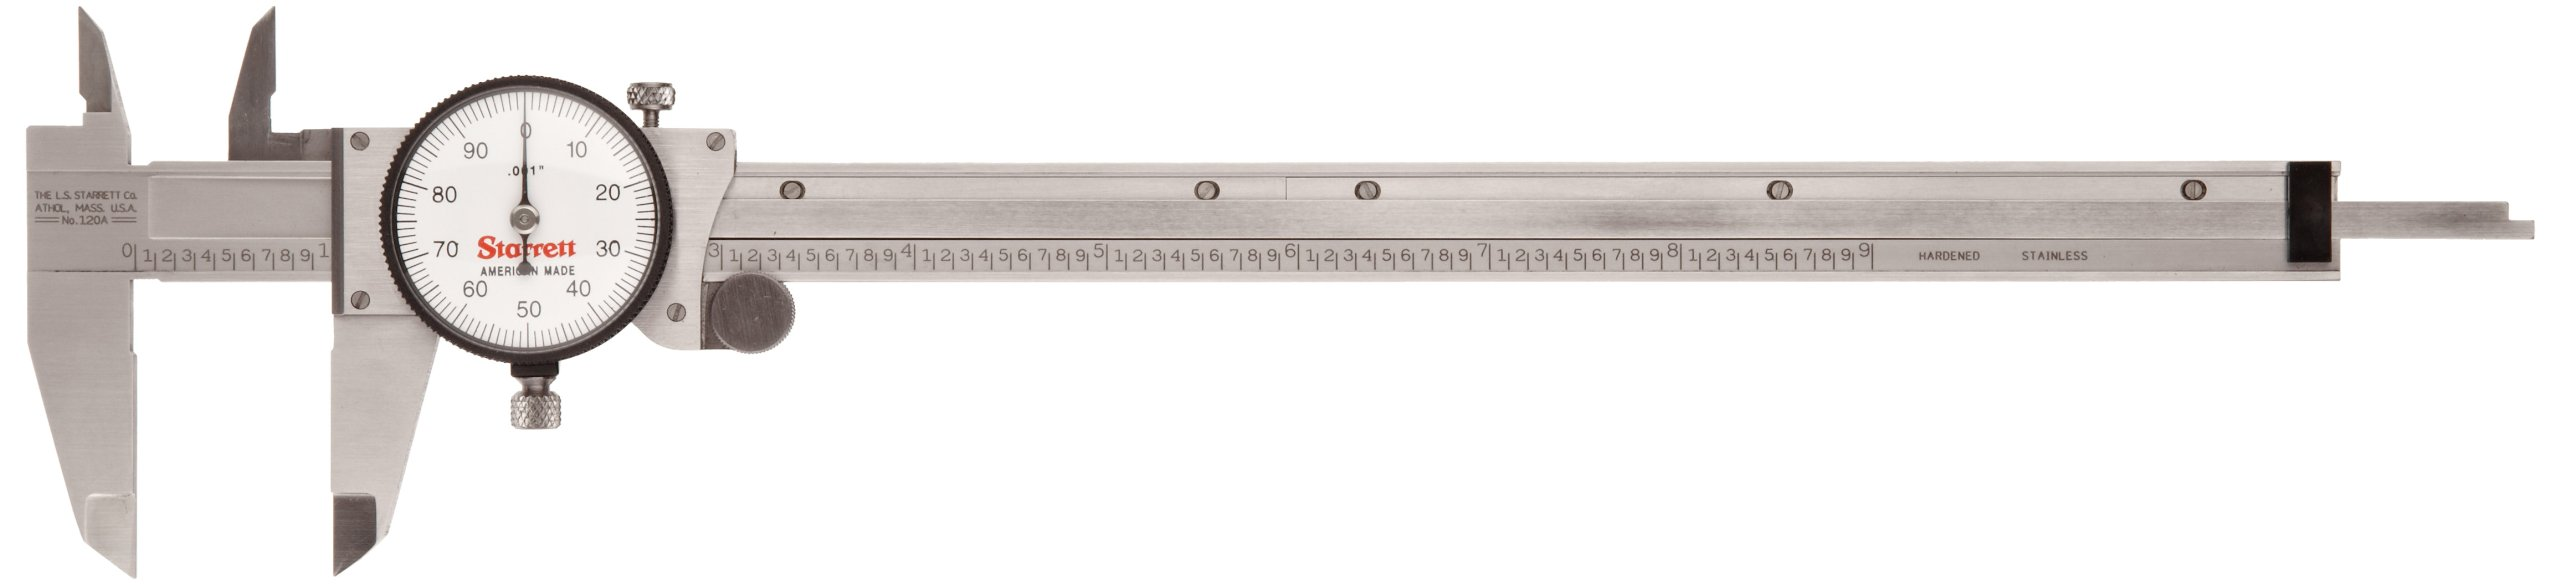 Starrett 120A-9 Dial Caliper, Stainless Steel, White Face, 0-9'' Range, +/-0.001'' Accuracy, 0.001'' Resolution